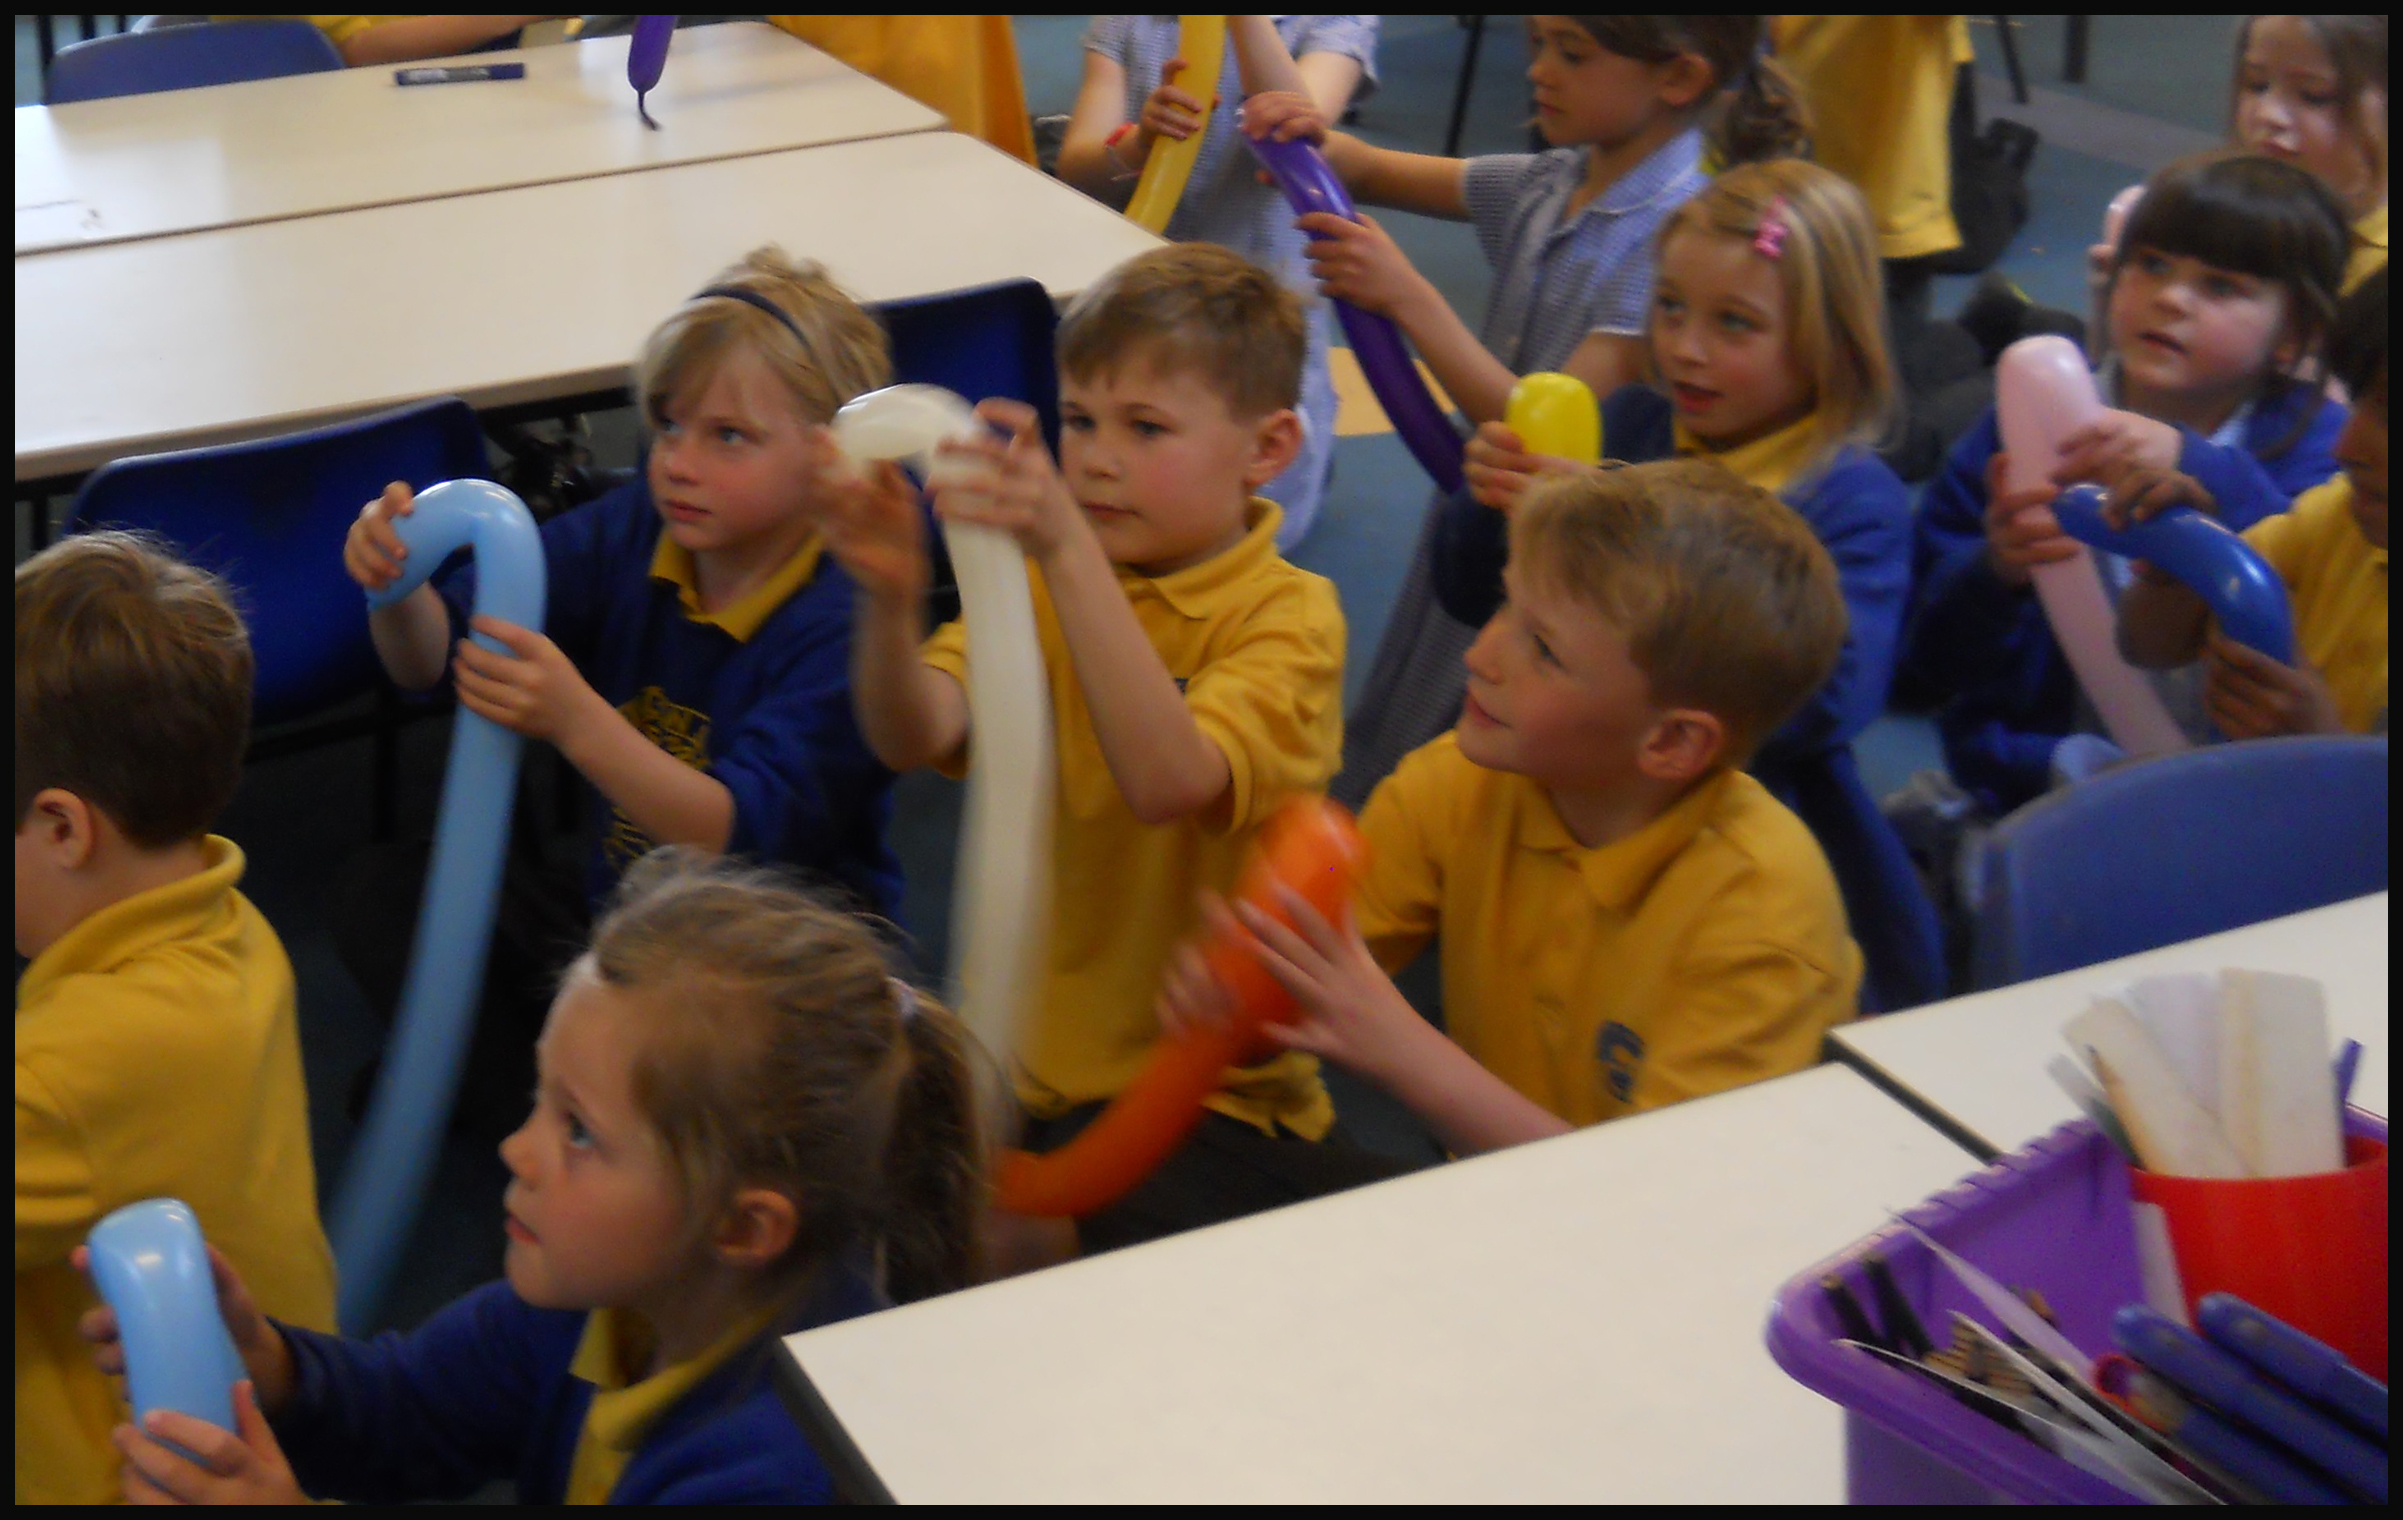 School workshops & science assemblies